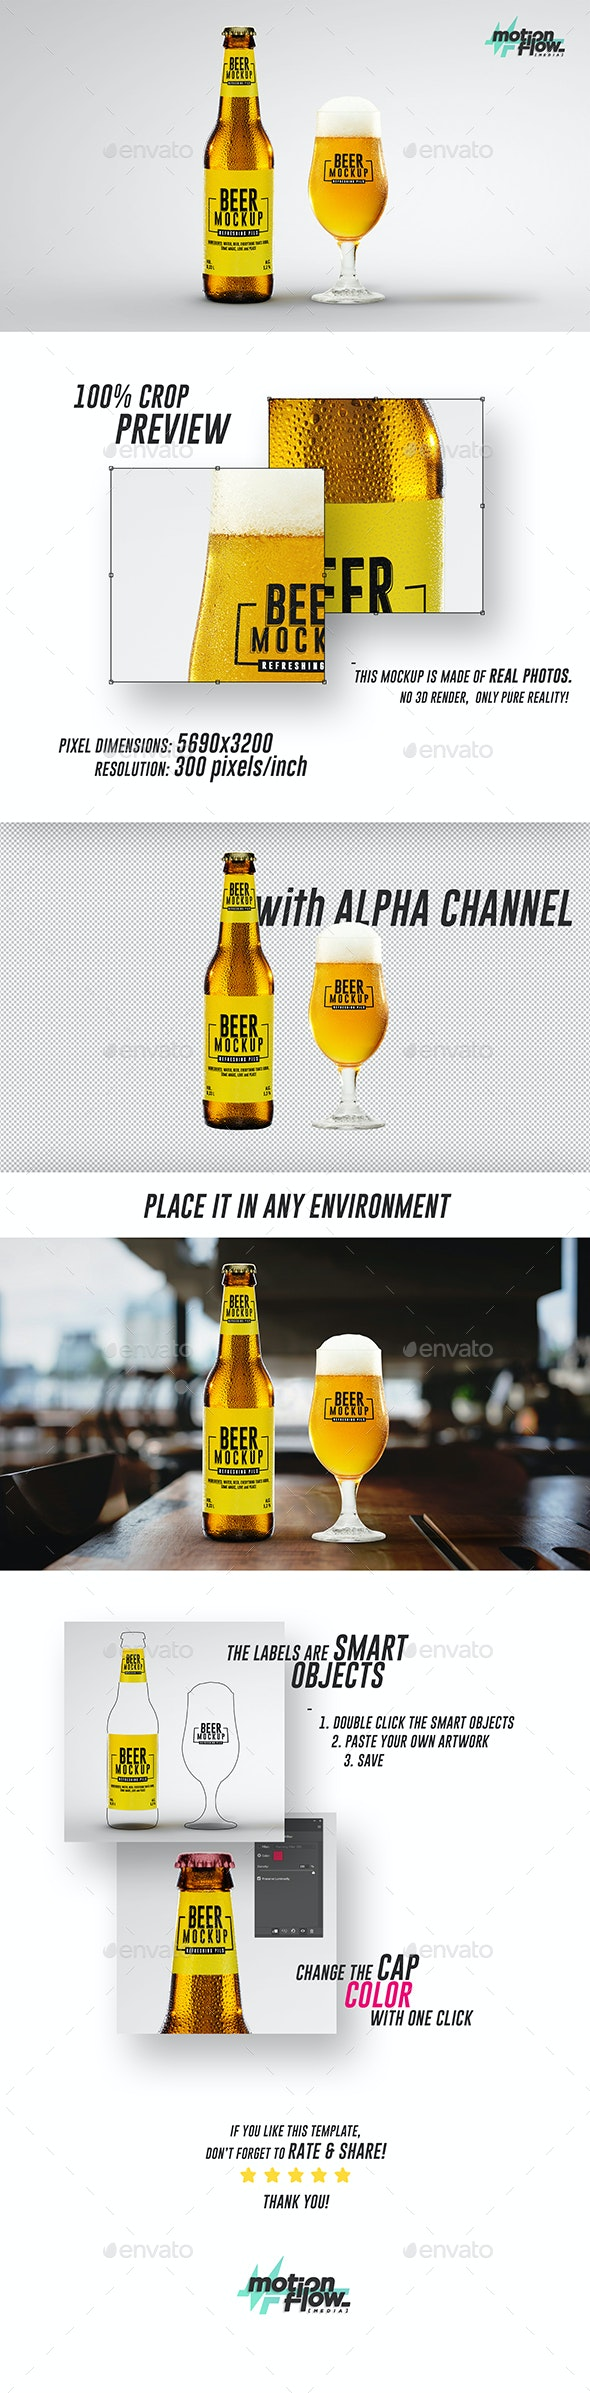 Beer Mockup - Food and Drink Packaging